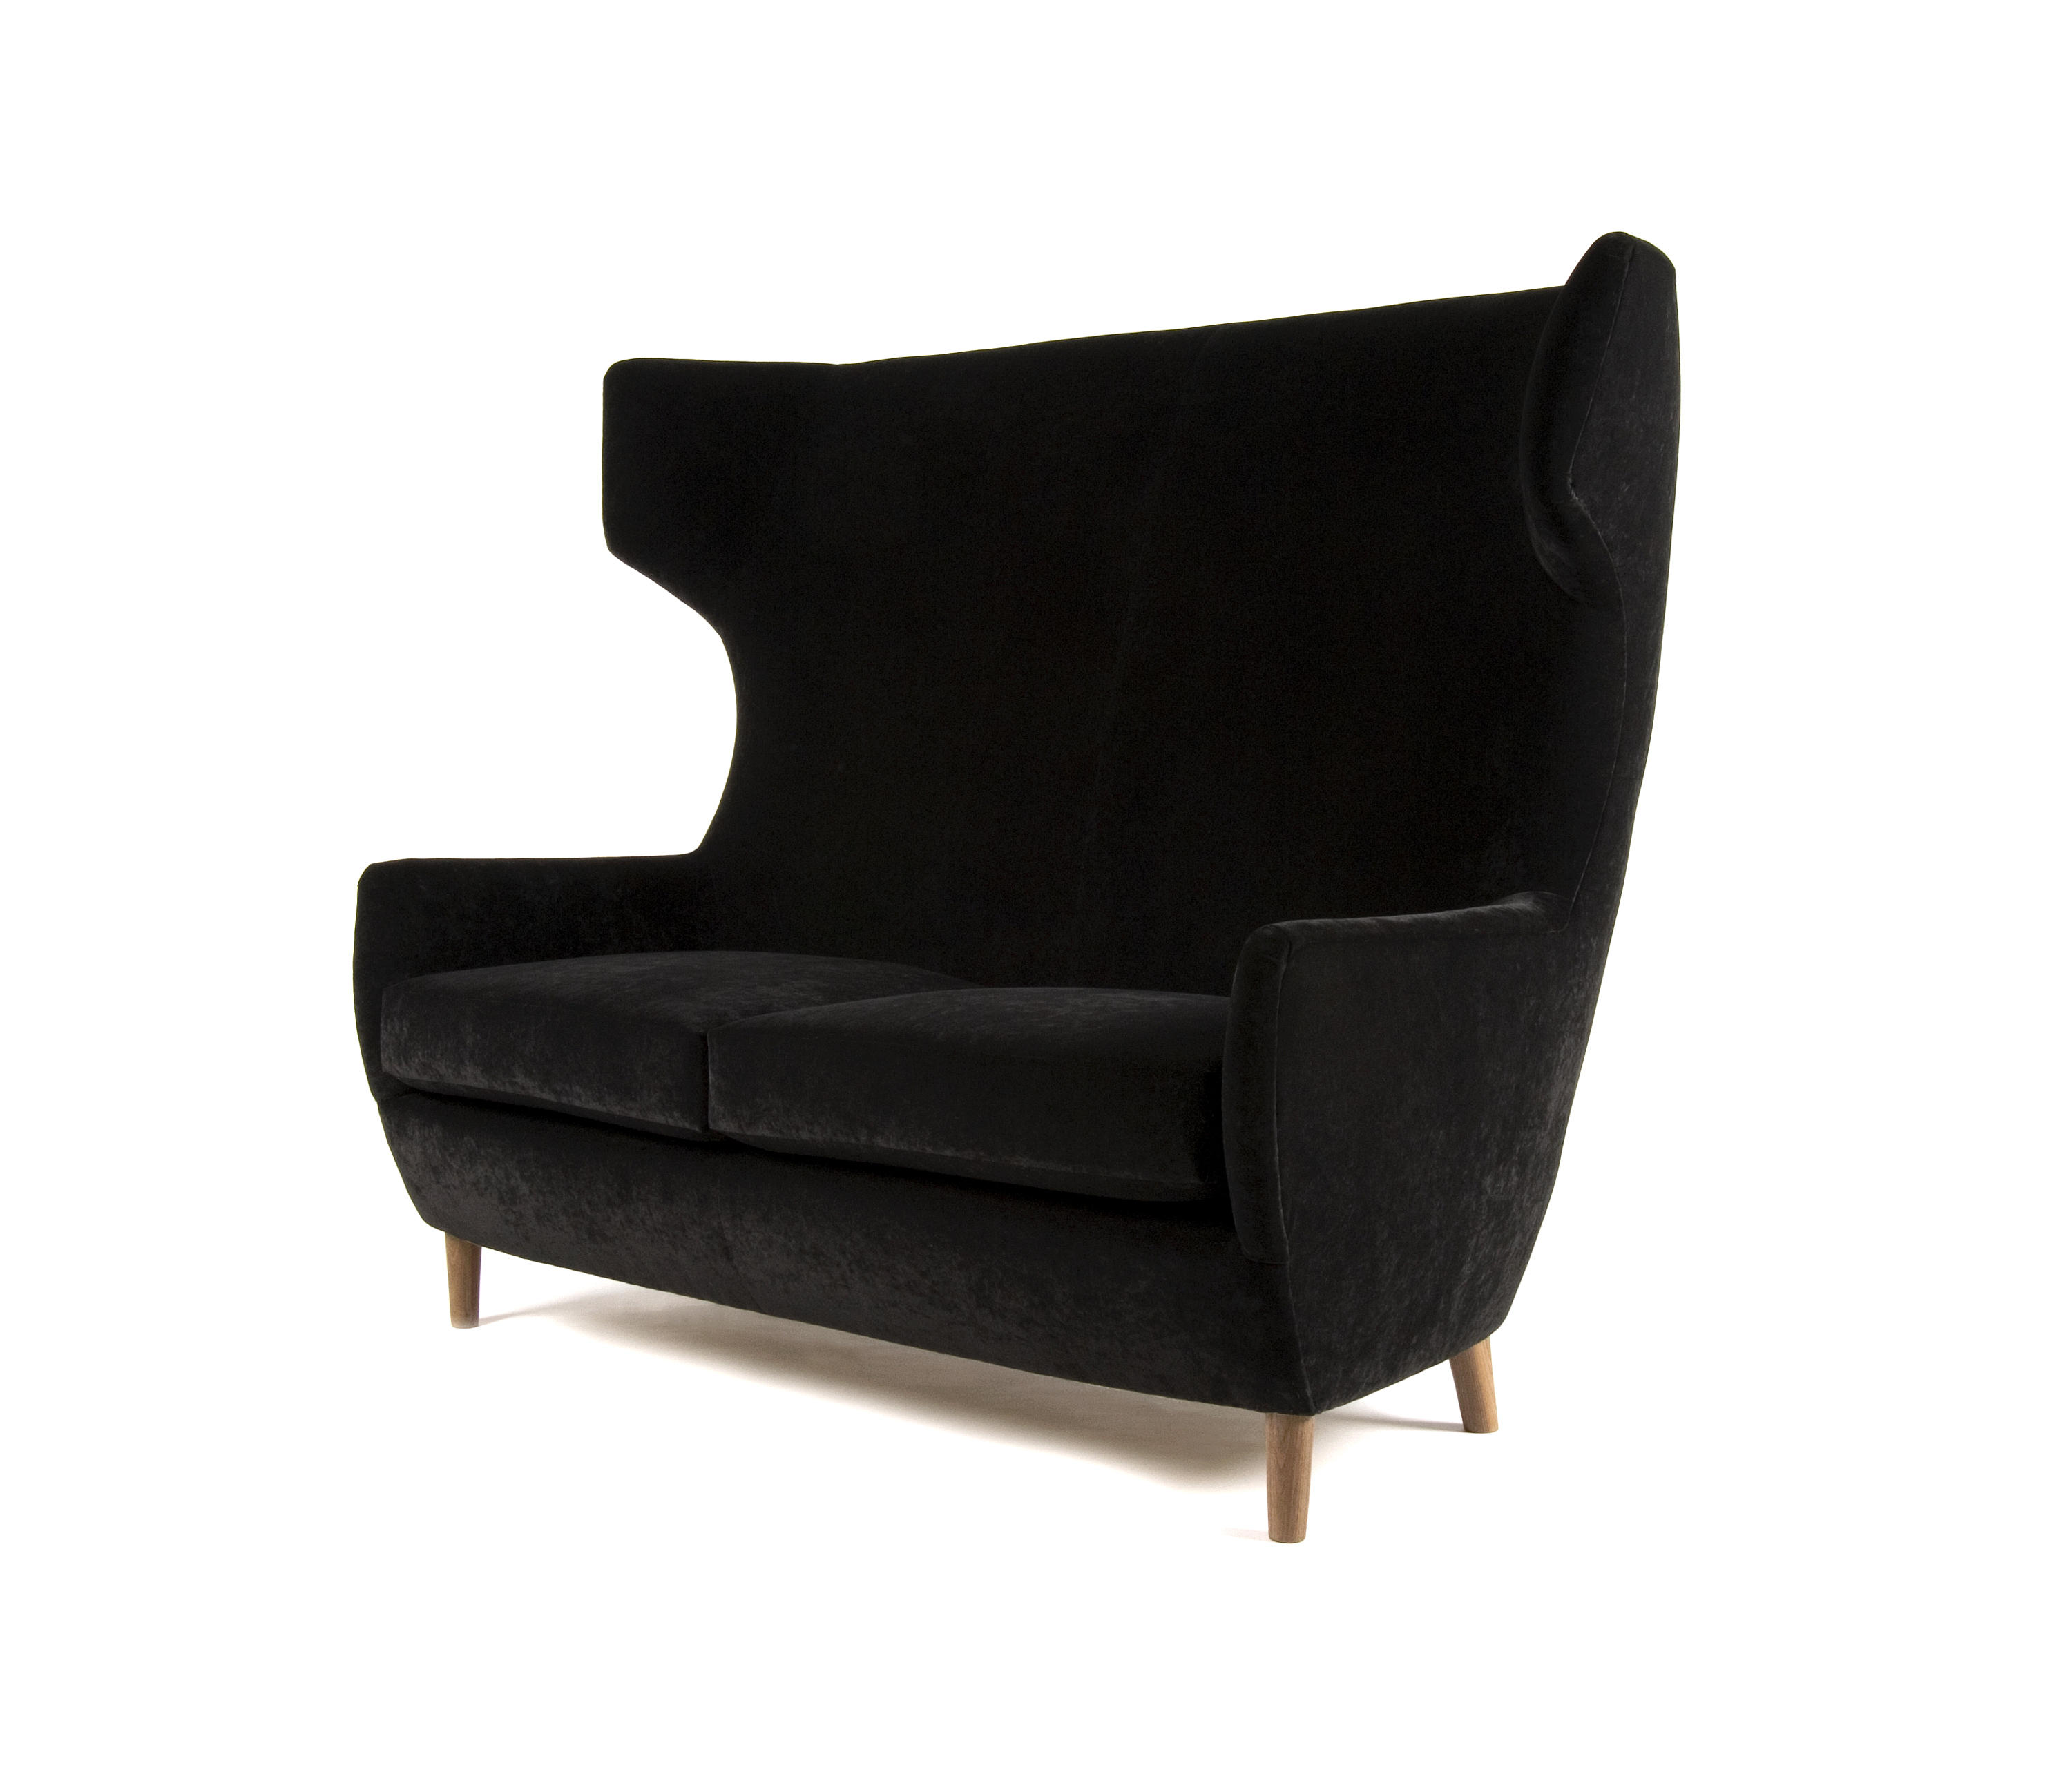 Popular HARDY WINGBACK SOFA - Lounge sofas from Dare Studio | Architonic DE54